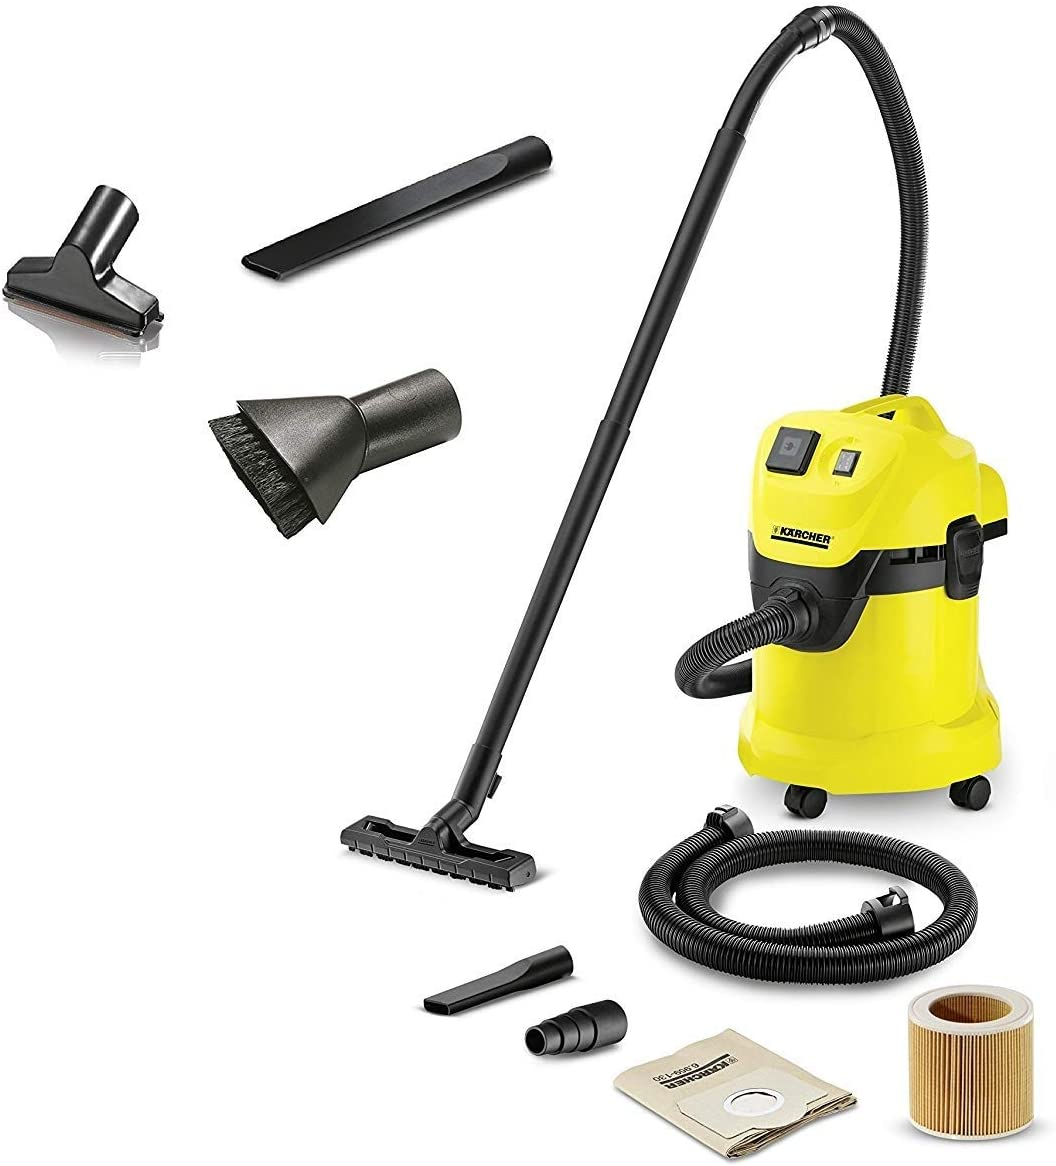 Karcher Aspiradora multiusos MV/WD 3 P Extension Kit 1.629 – 885.0 Incluye Set007 compuesto de boquilla extra larga, pincel & Boquilla de aspiración: Amazon.es: Jardín